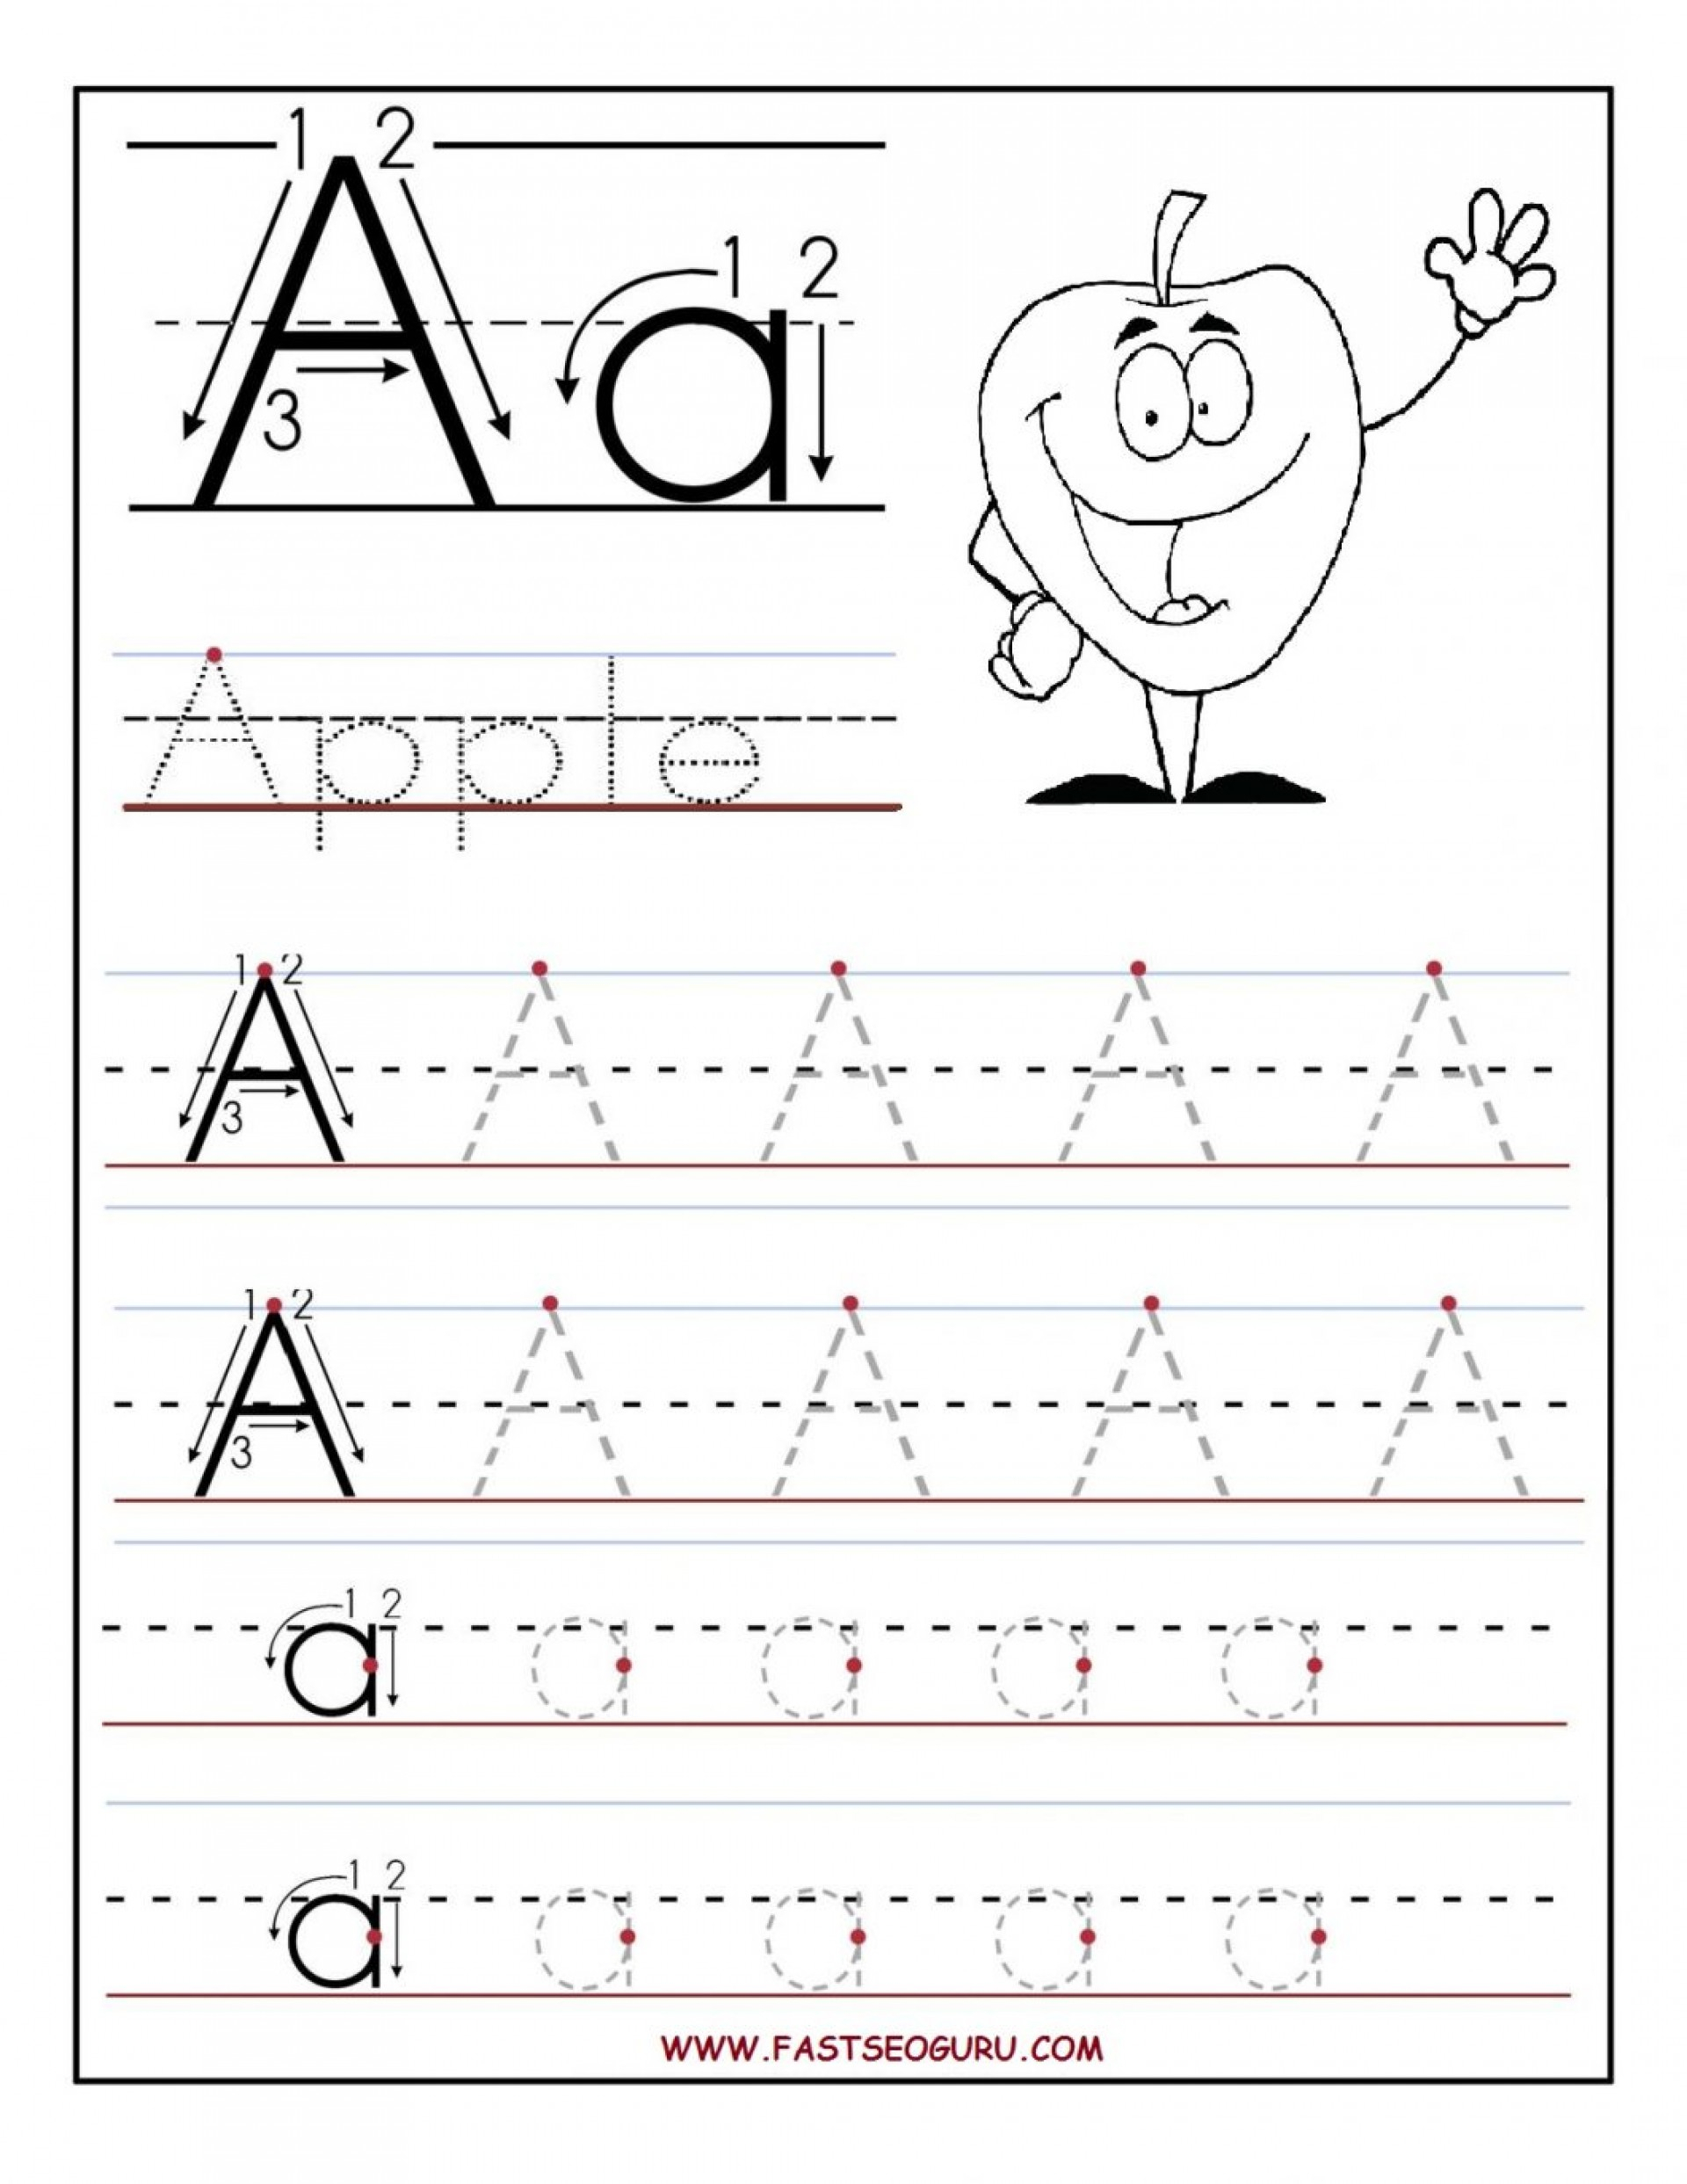 Coloring Book : Free Printable Tracingts For Kindergarten for Free Printable Tracing Letters